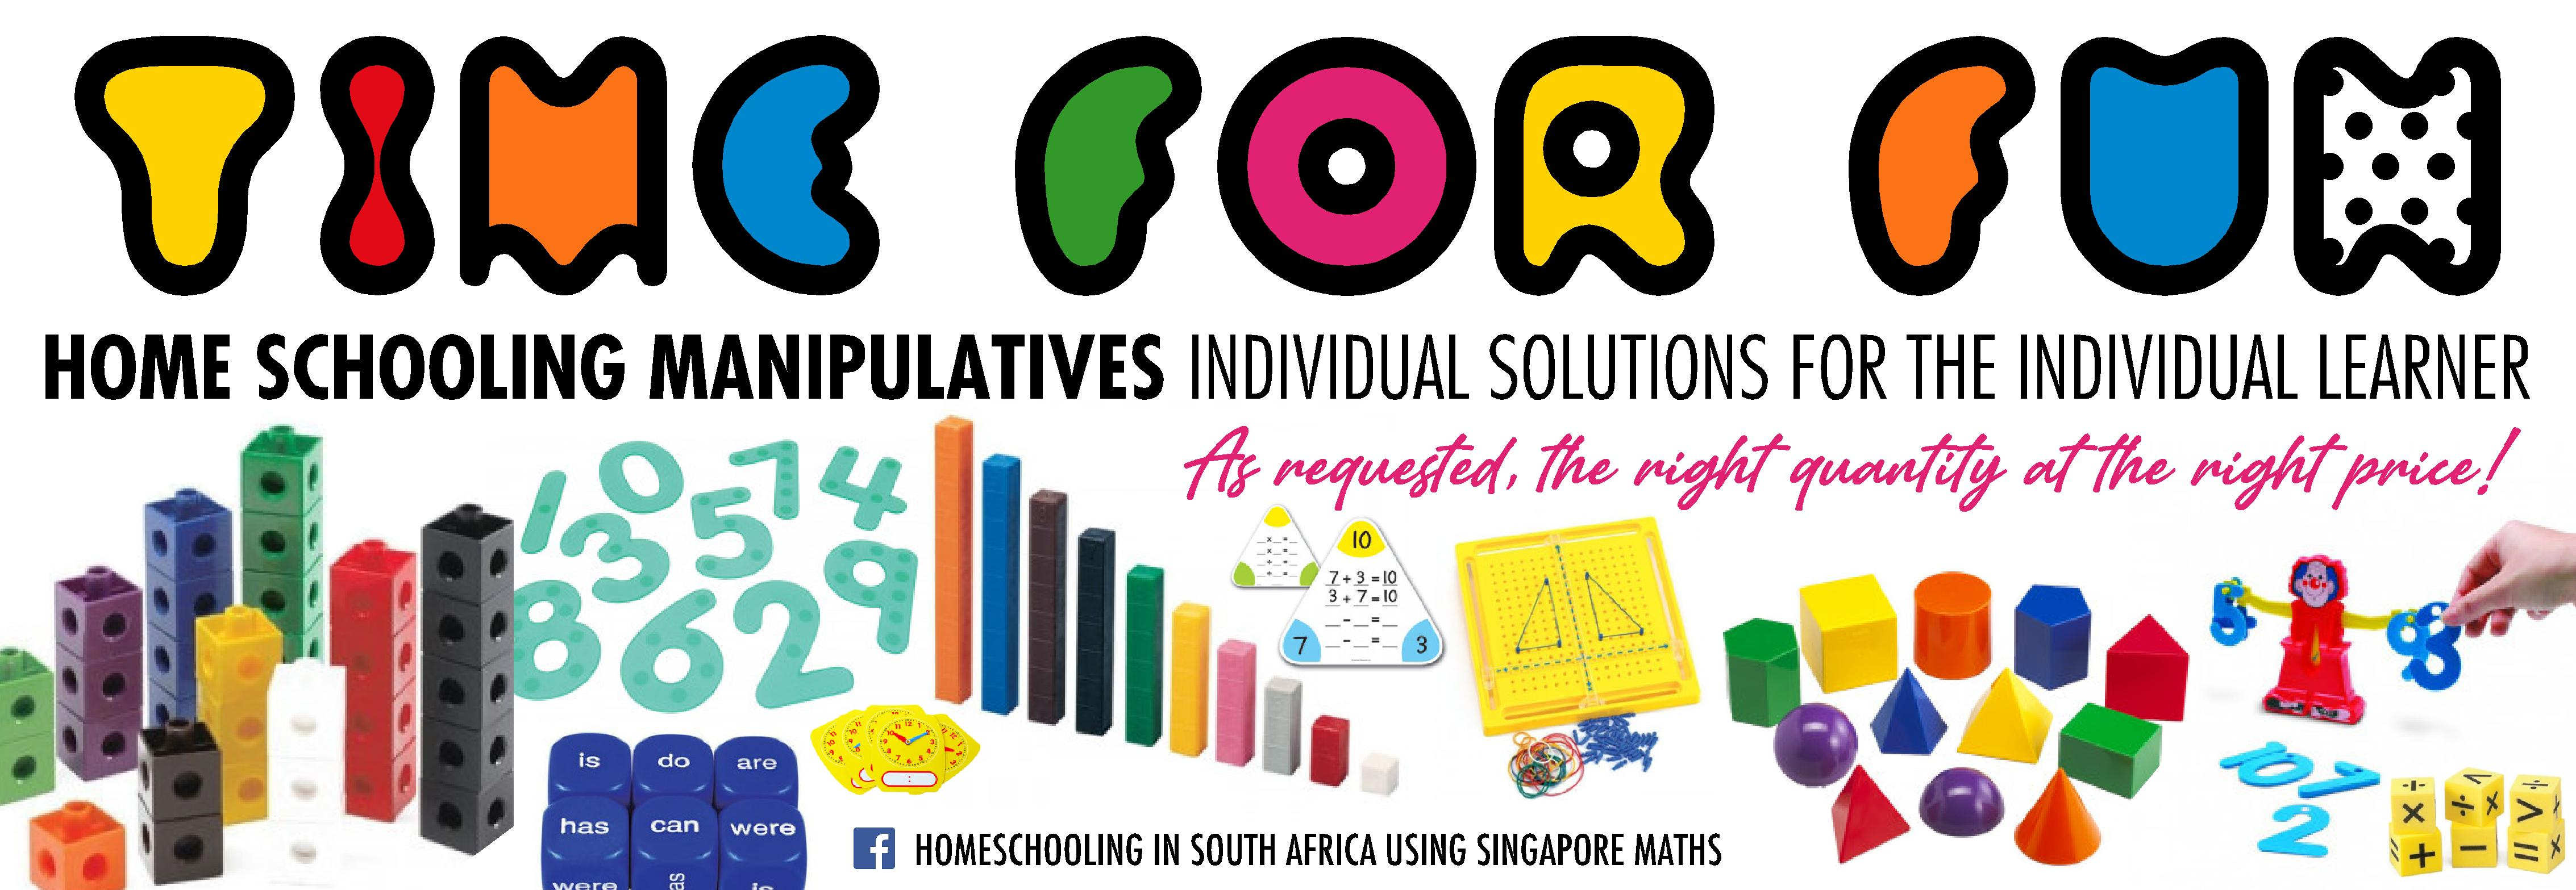 Banner for Time For Fun resources and manipulatives for homeschoolers.